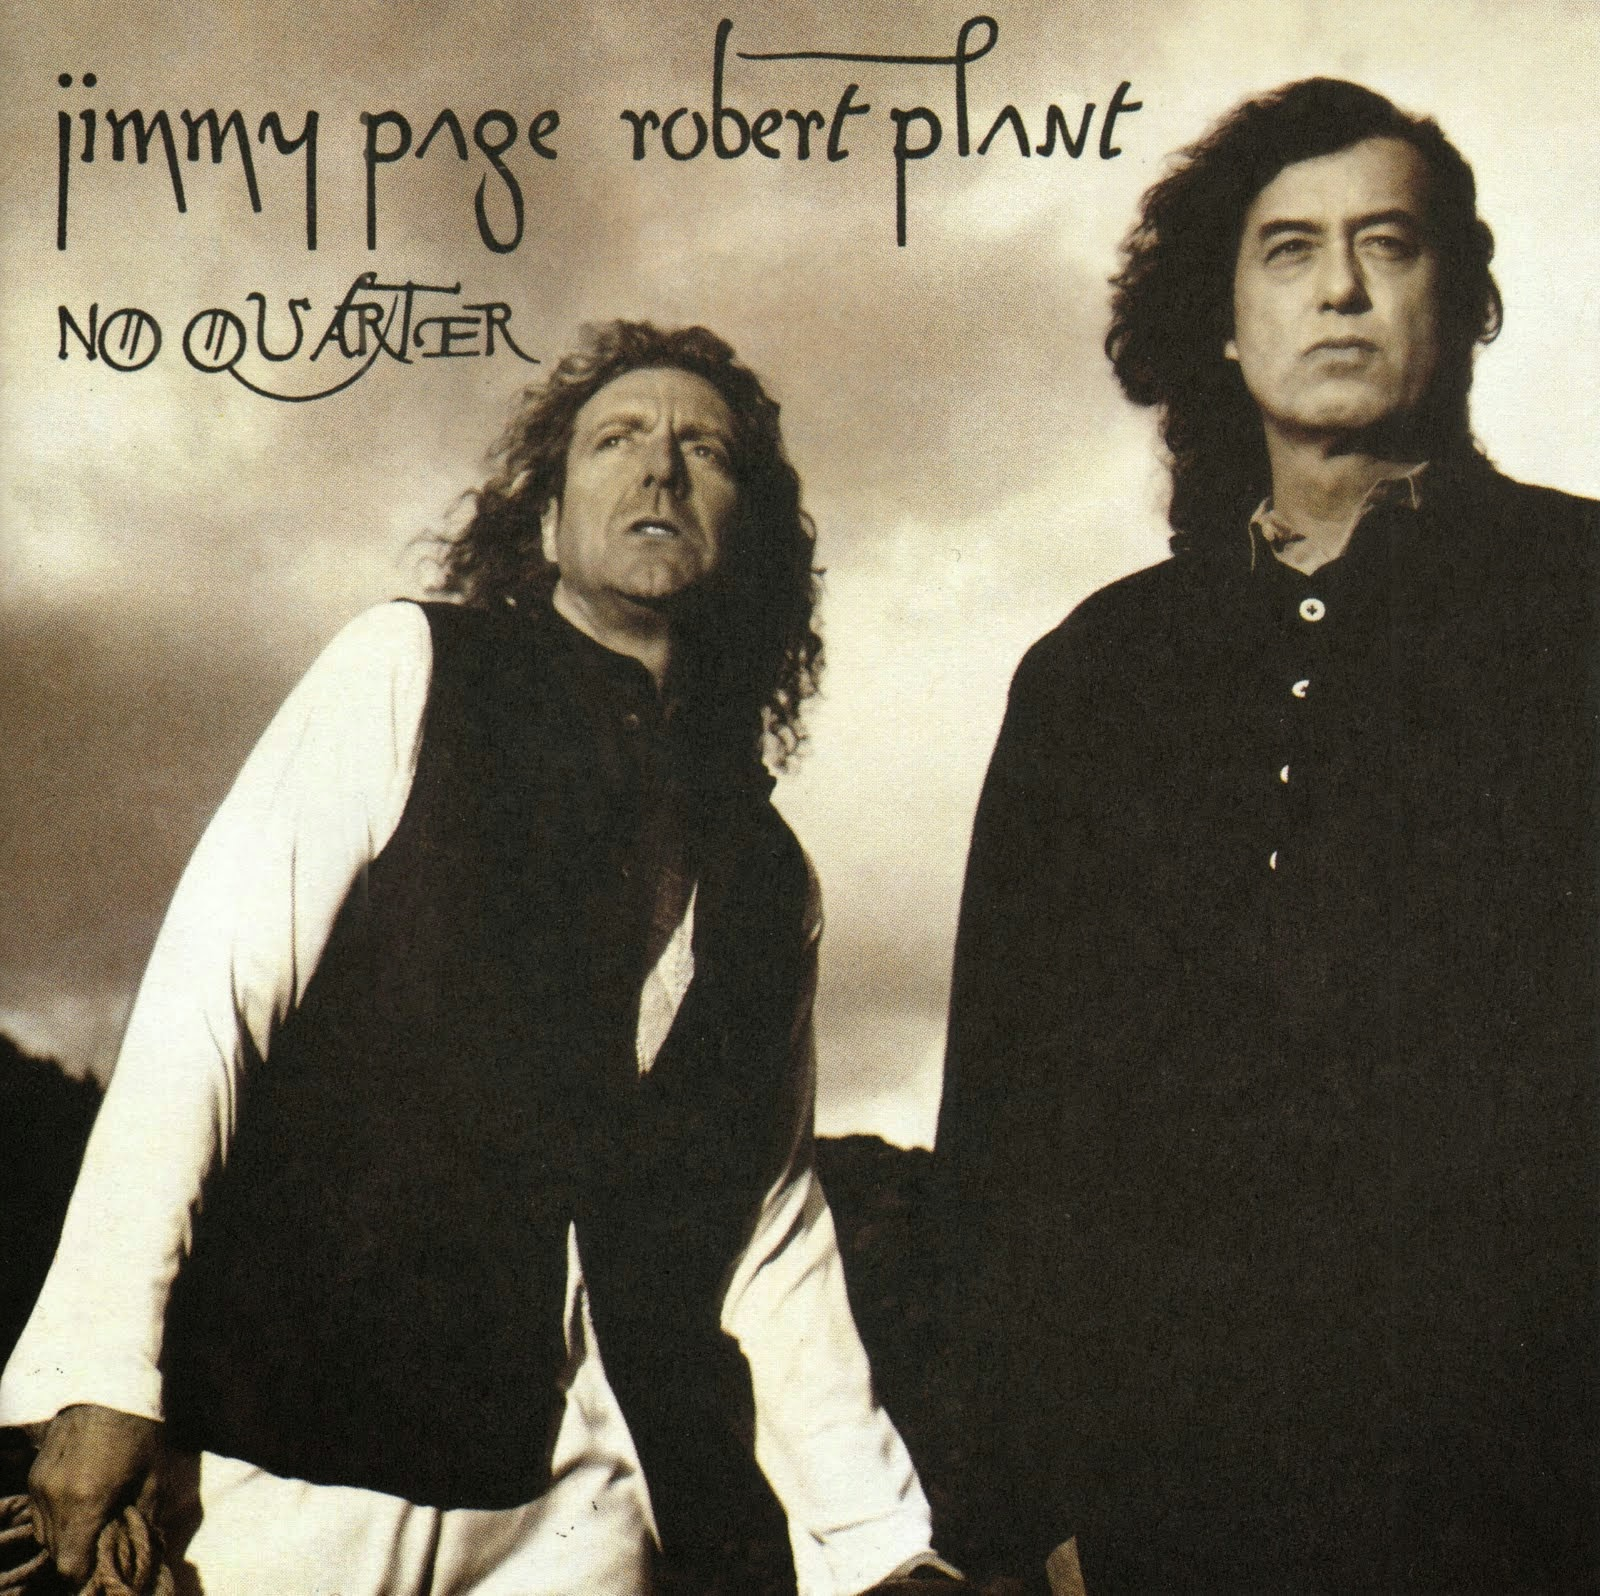 Jimmy page and robert plant 2015 dating. heidi capitulo 51 completo latino dating.